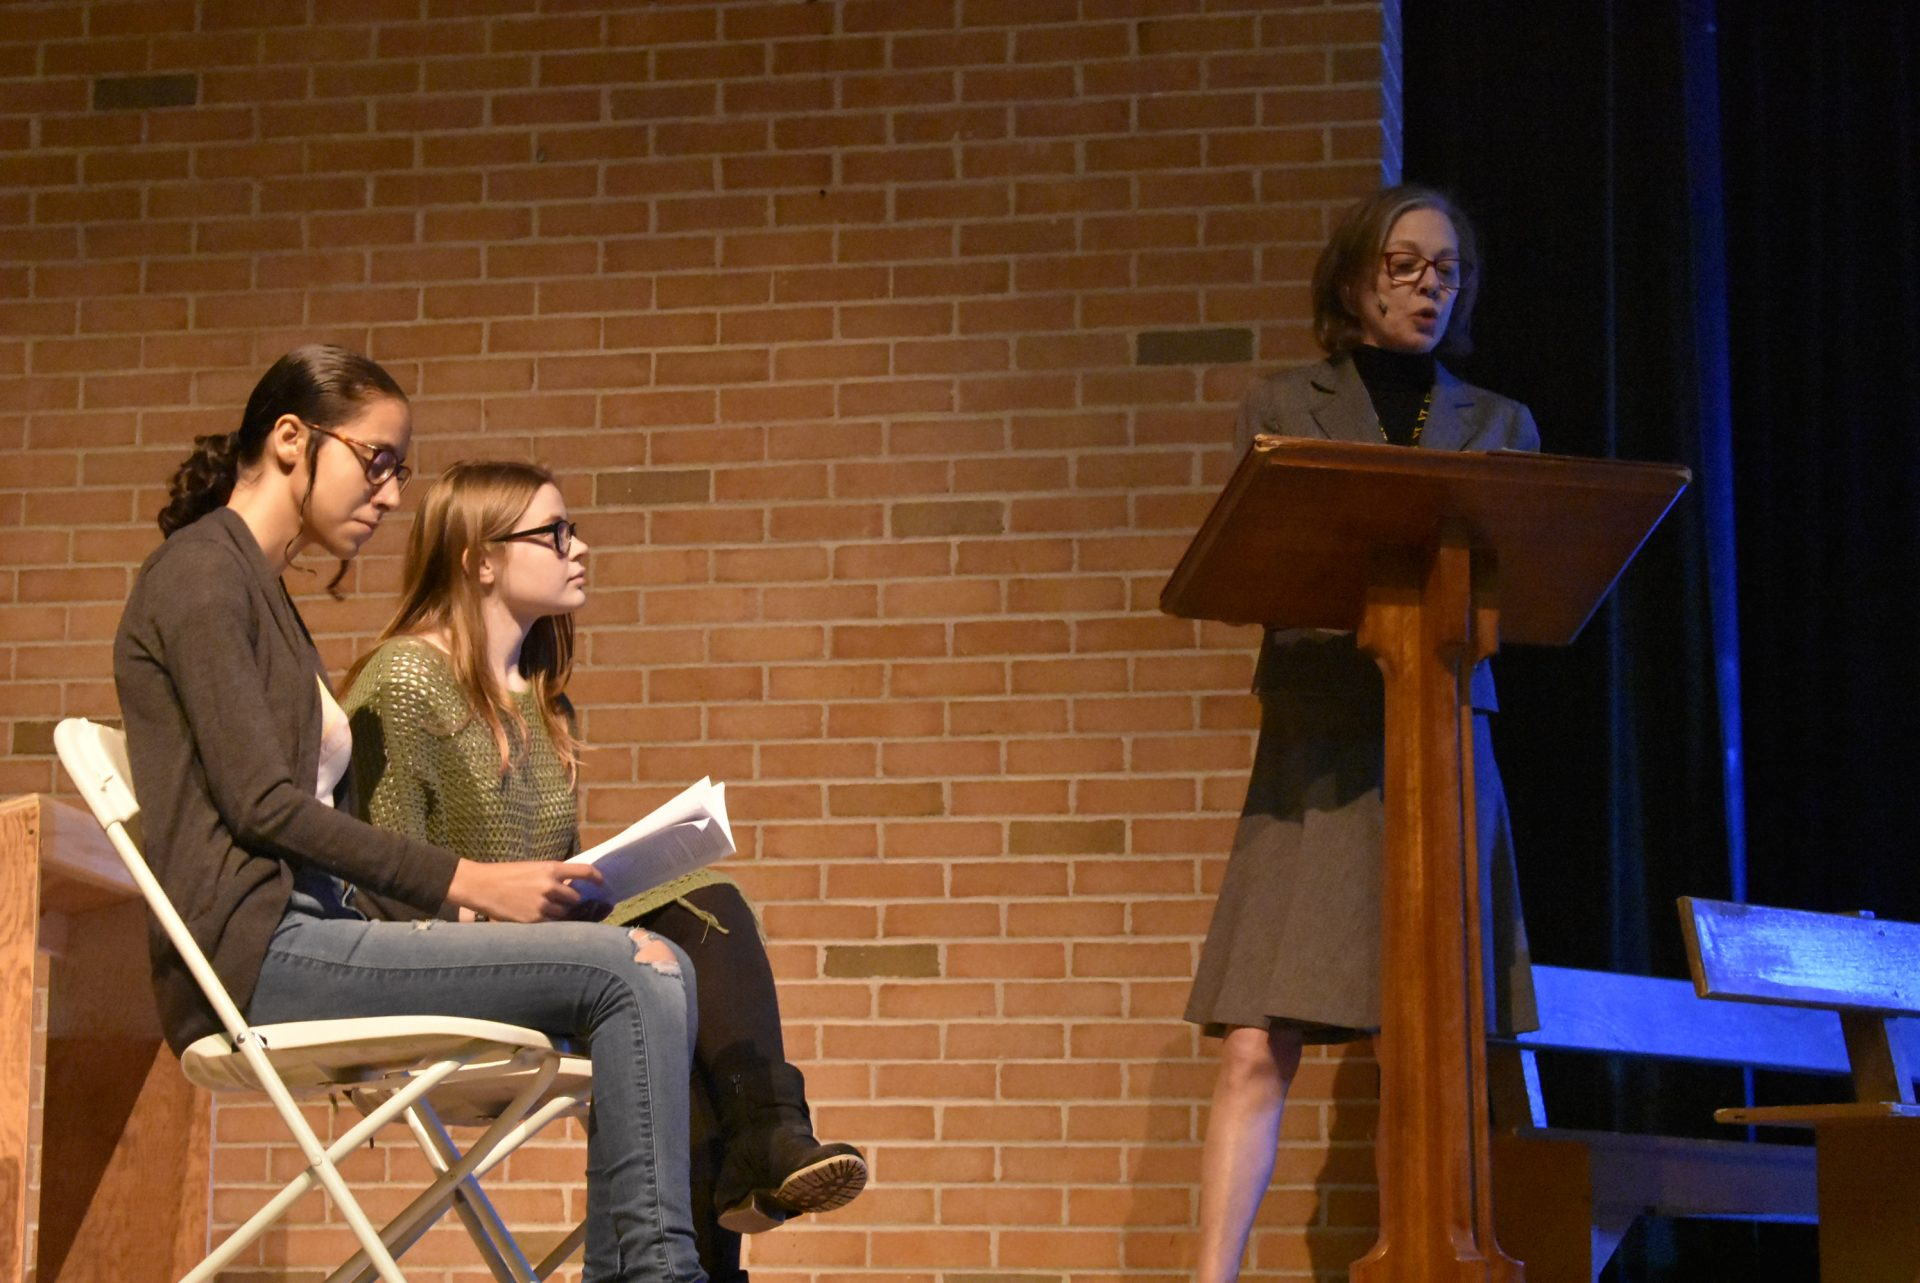 VTTC Actors on Stage with Ms. Morrissey (Practicing)